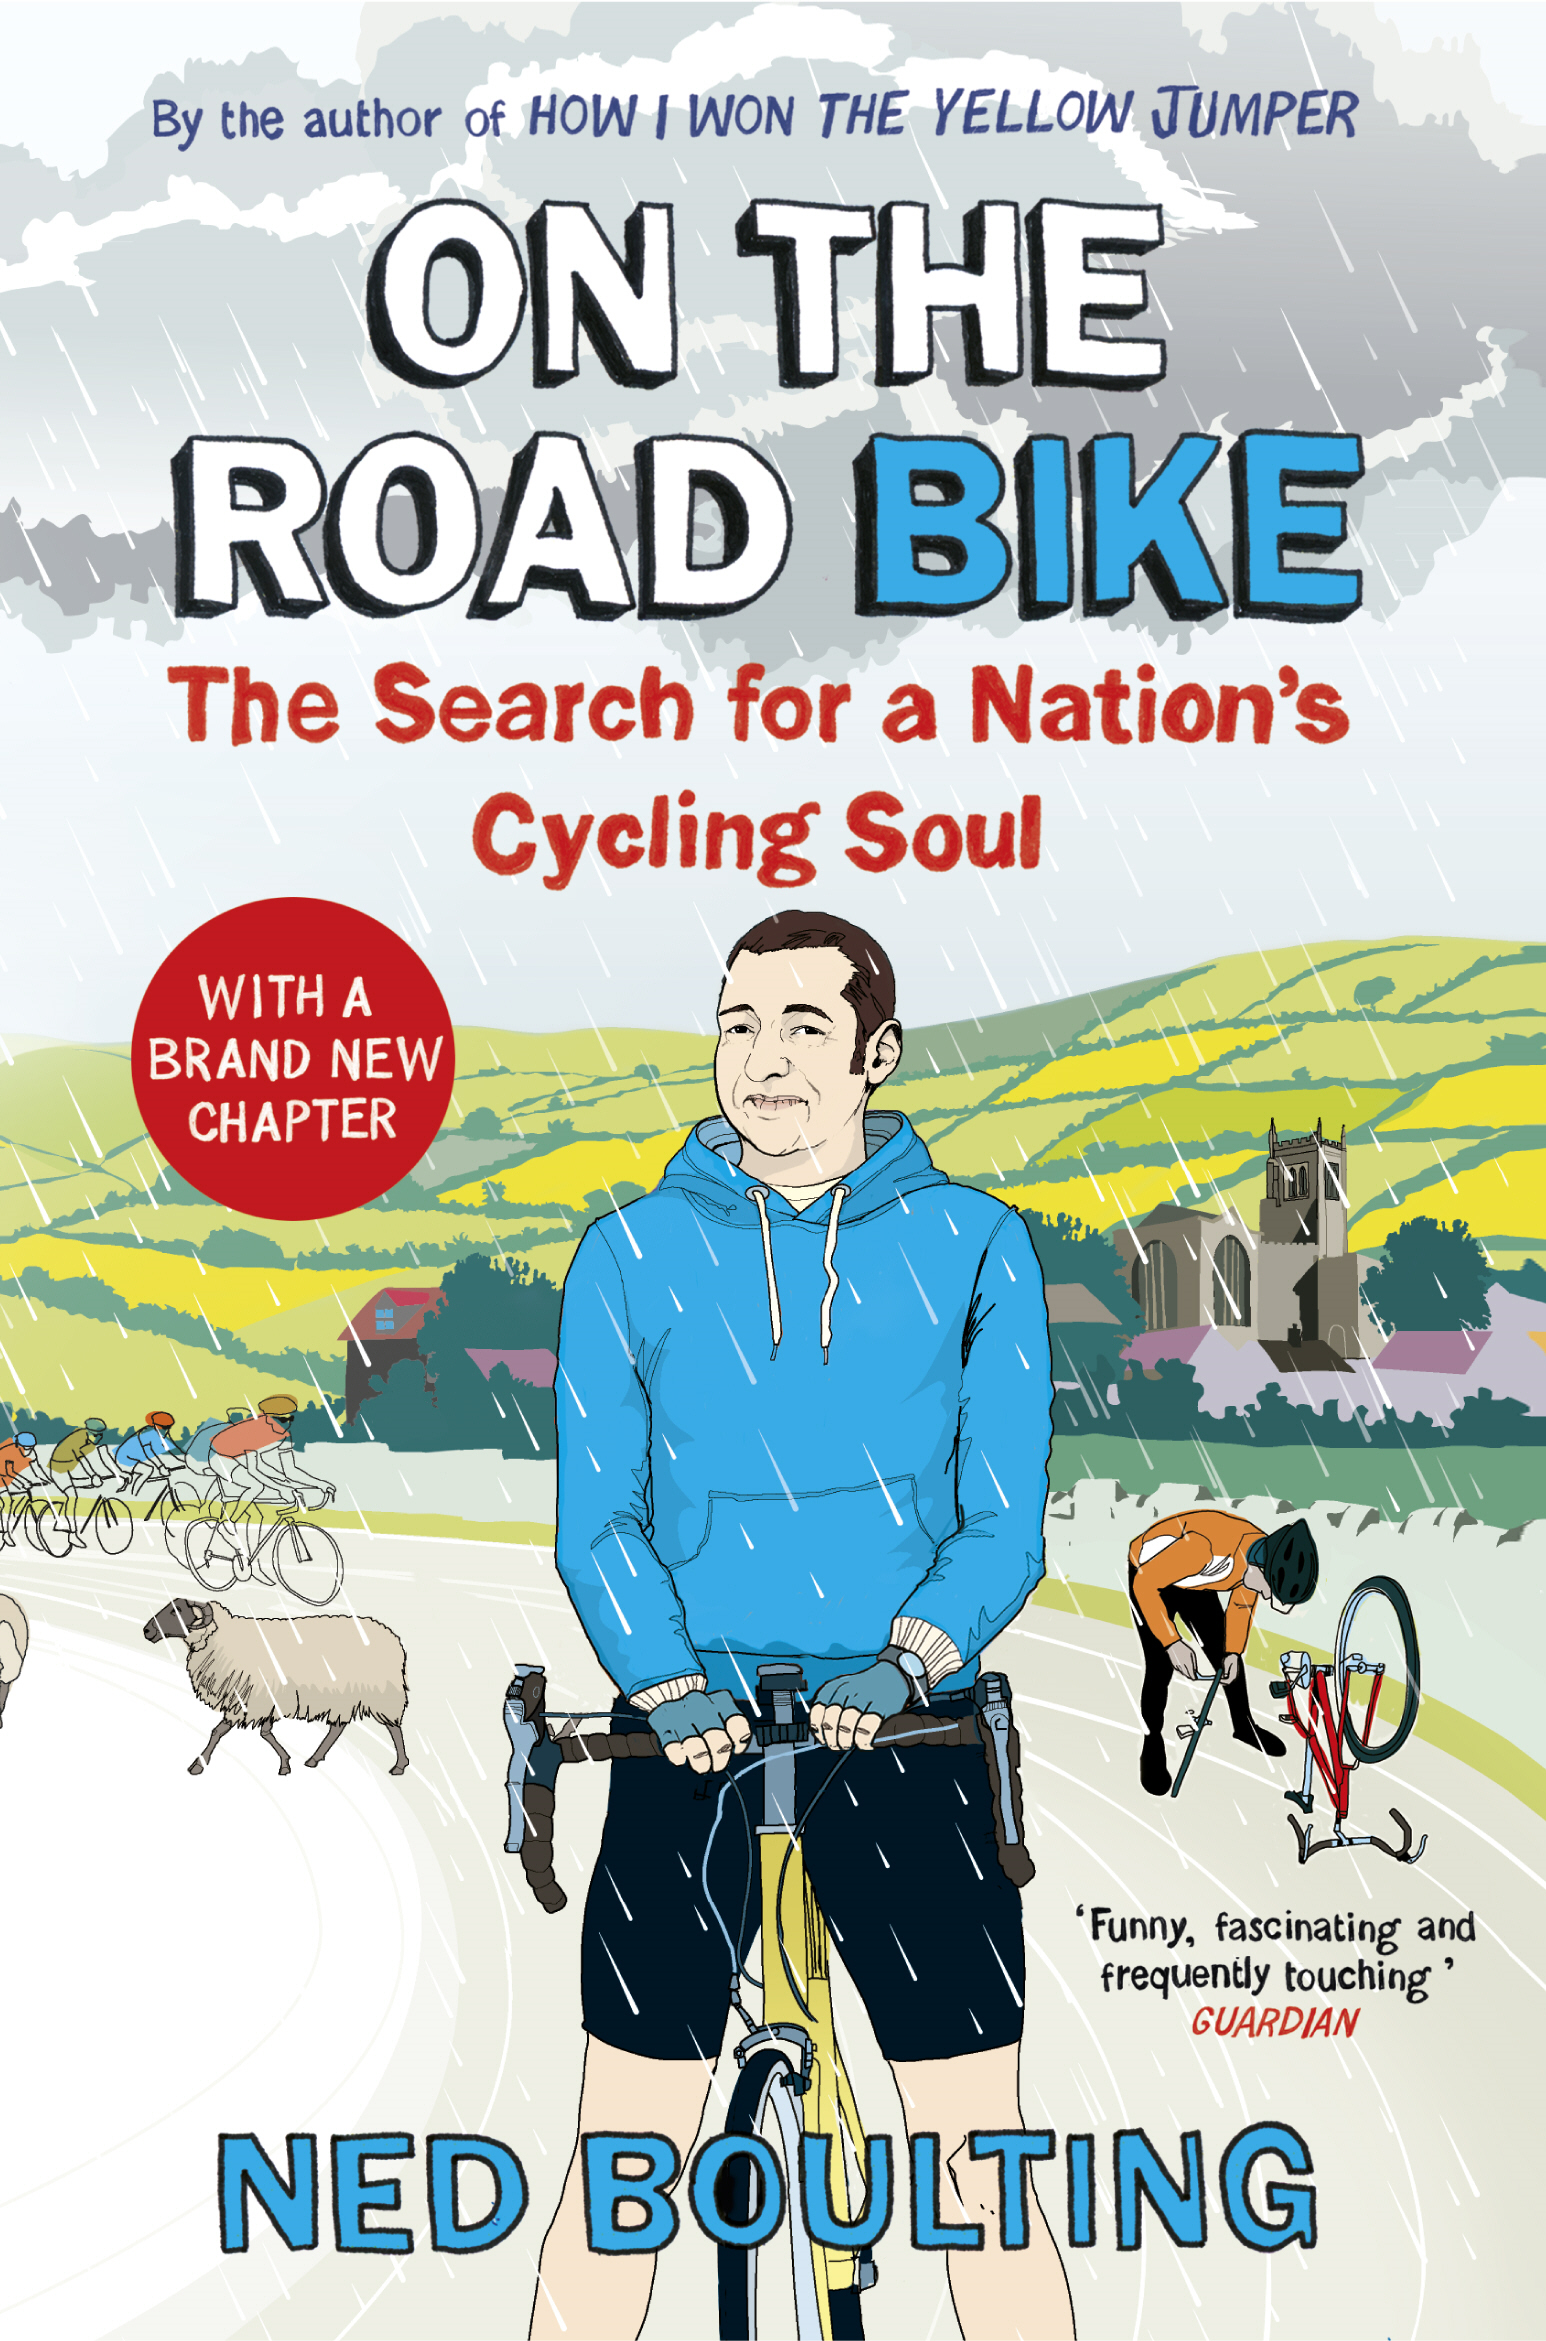 On the Road Bike The Search For a Nation?s Cycling Soul